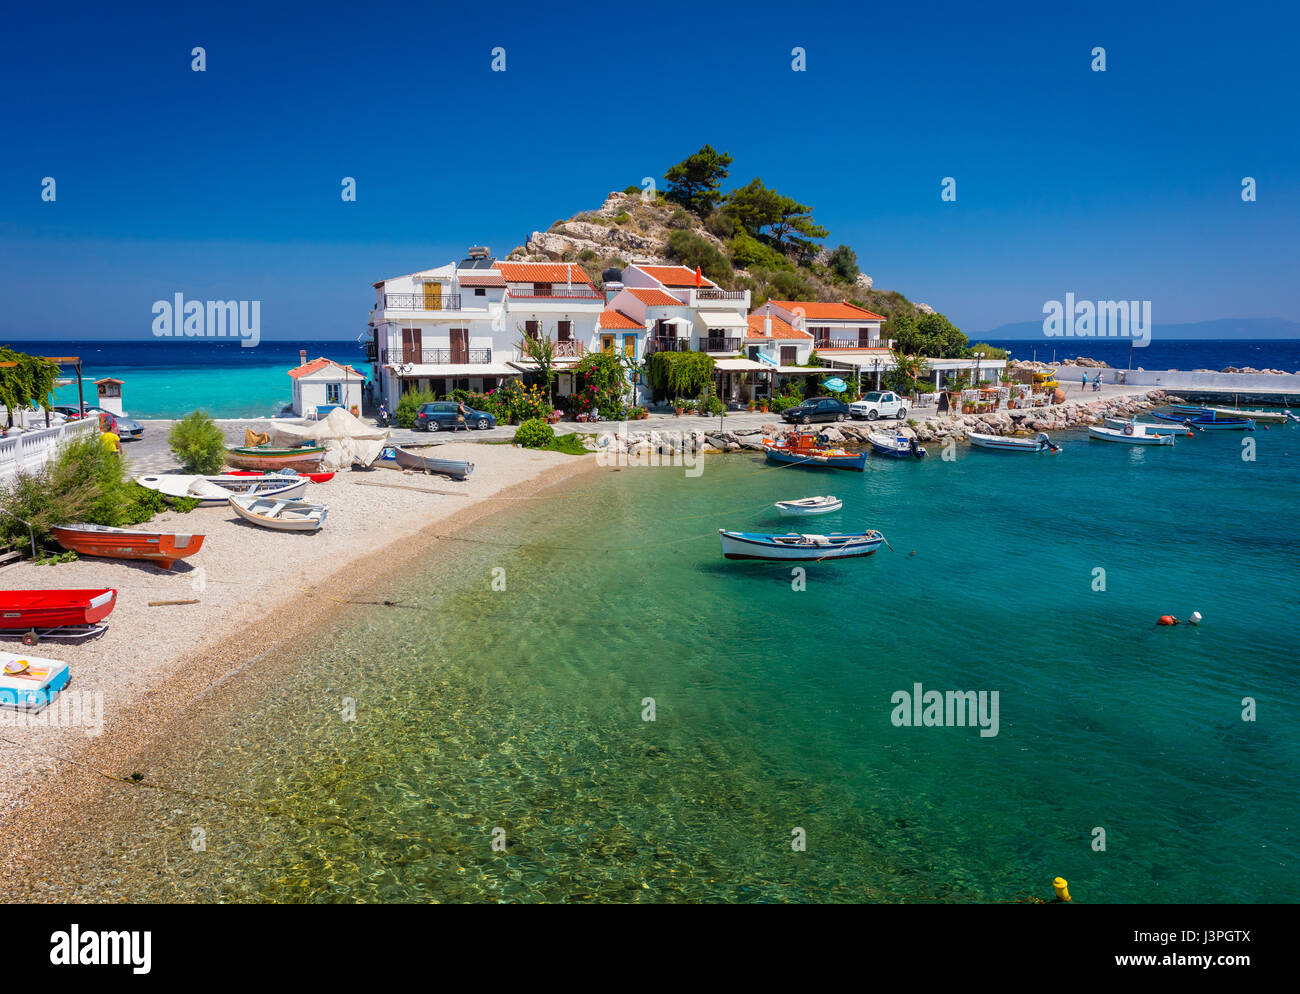 Kokkari is a fishing harbour of Samos Island, which has now developed into a tourist center. Still, it preserves - Stock Image